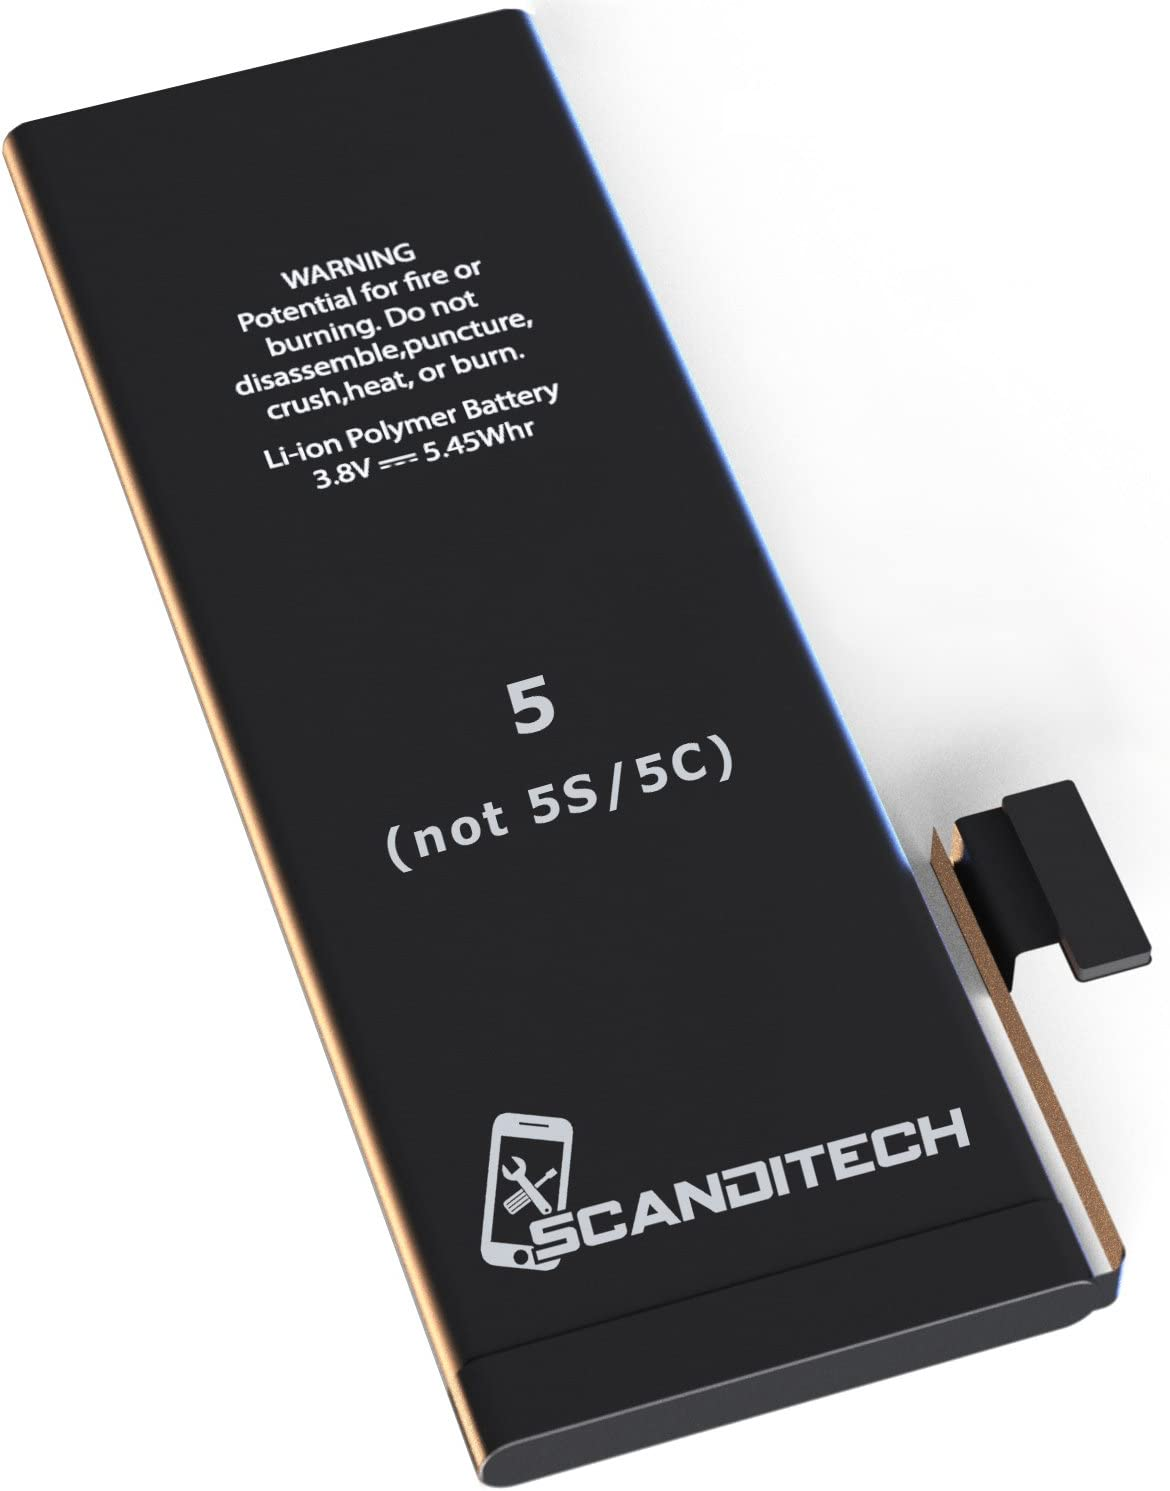 ScandiTech Battery Model iP5 - Compatible with iPhone 5 (not 5S or 5C) - with Adhesive & Instructions (no Tools) - New 1440 mAh 0 Cycle Replacement Battery - Repair Your Phone in 15 min - 1 Year Warr